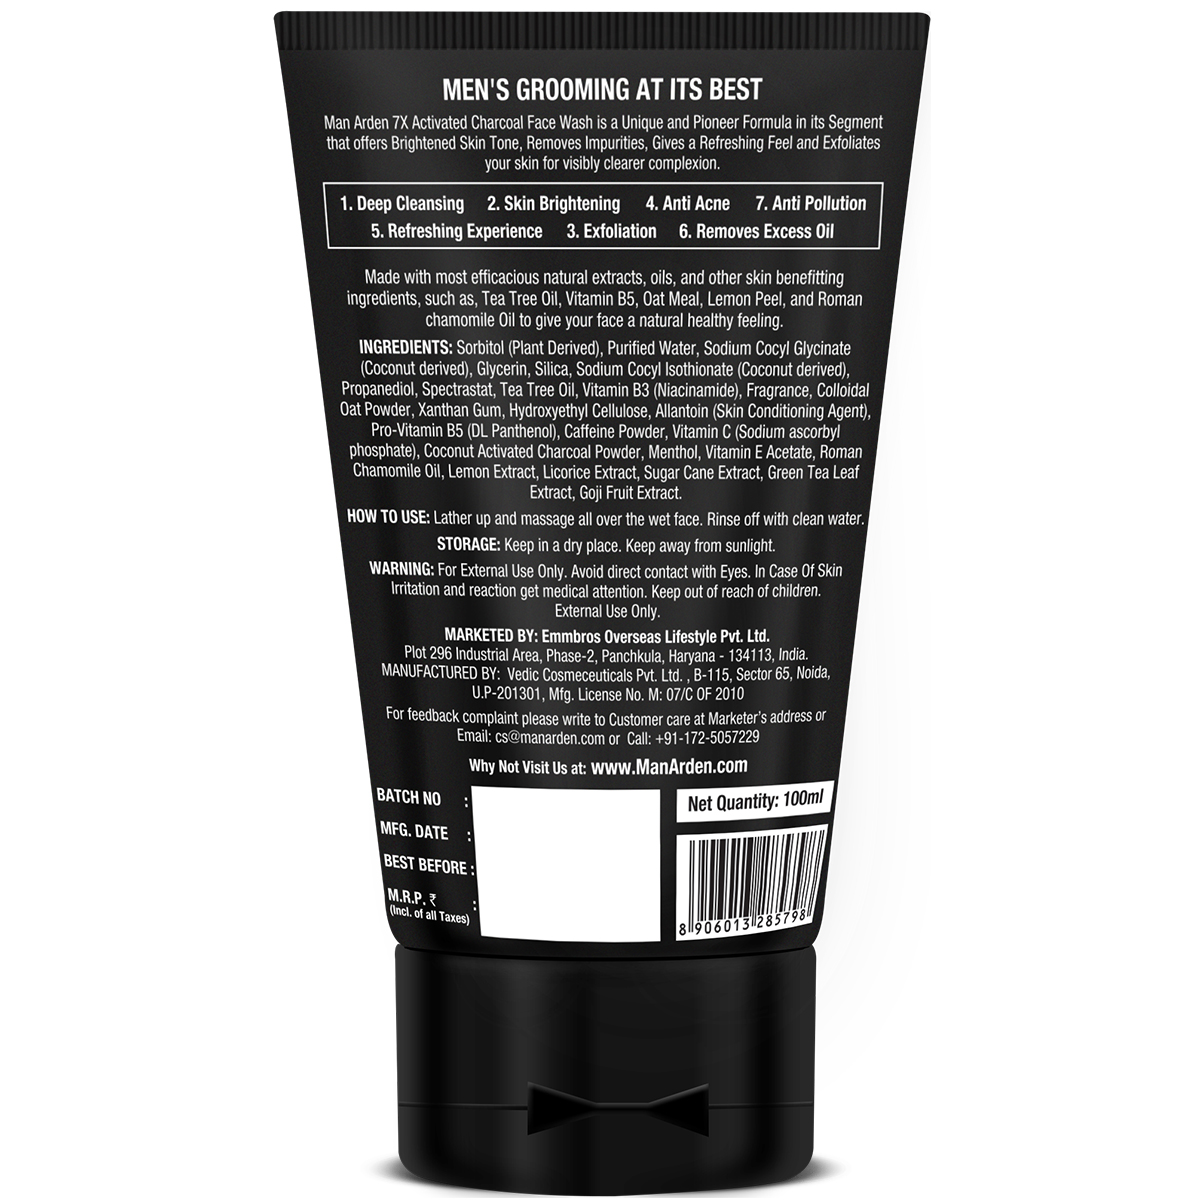 Man Arden 7X ACTIVATED CHARCOAL FACE SCRUB 100ML – INFUSED WITH VITAMIN C & MENTHOL1